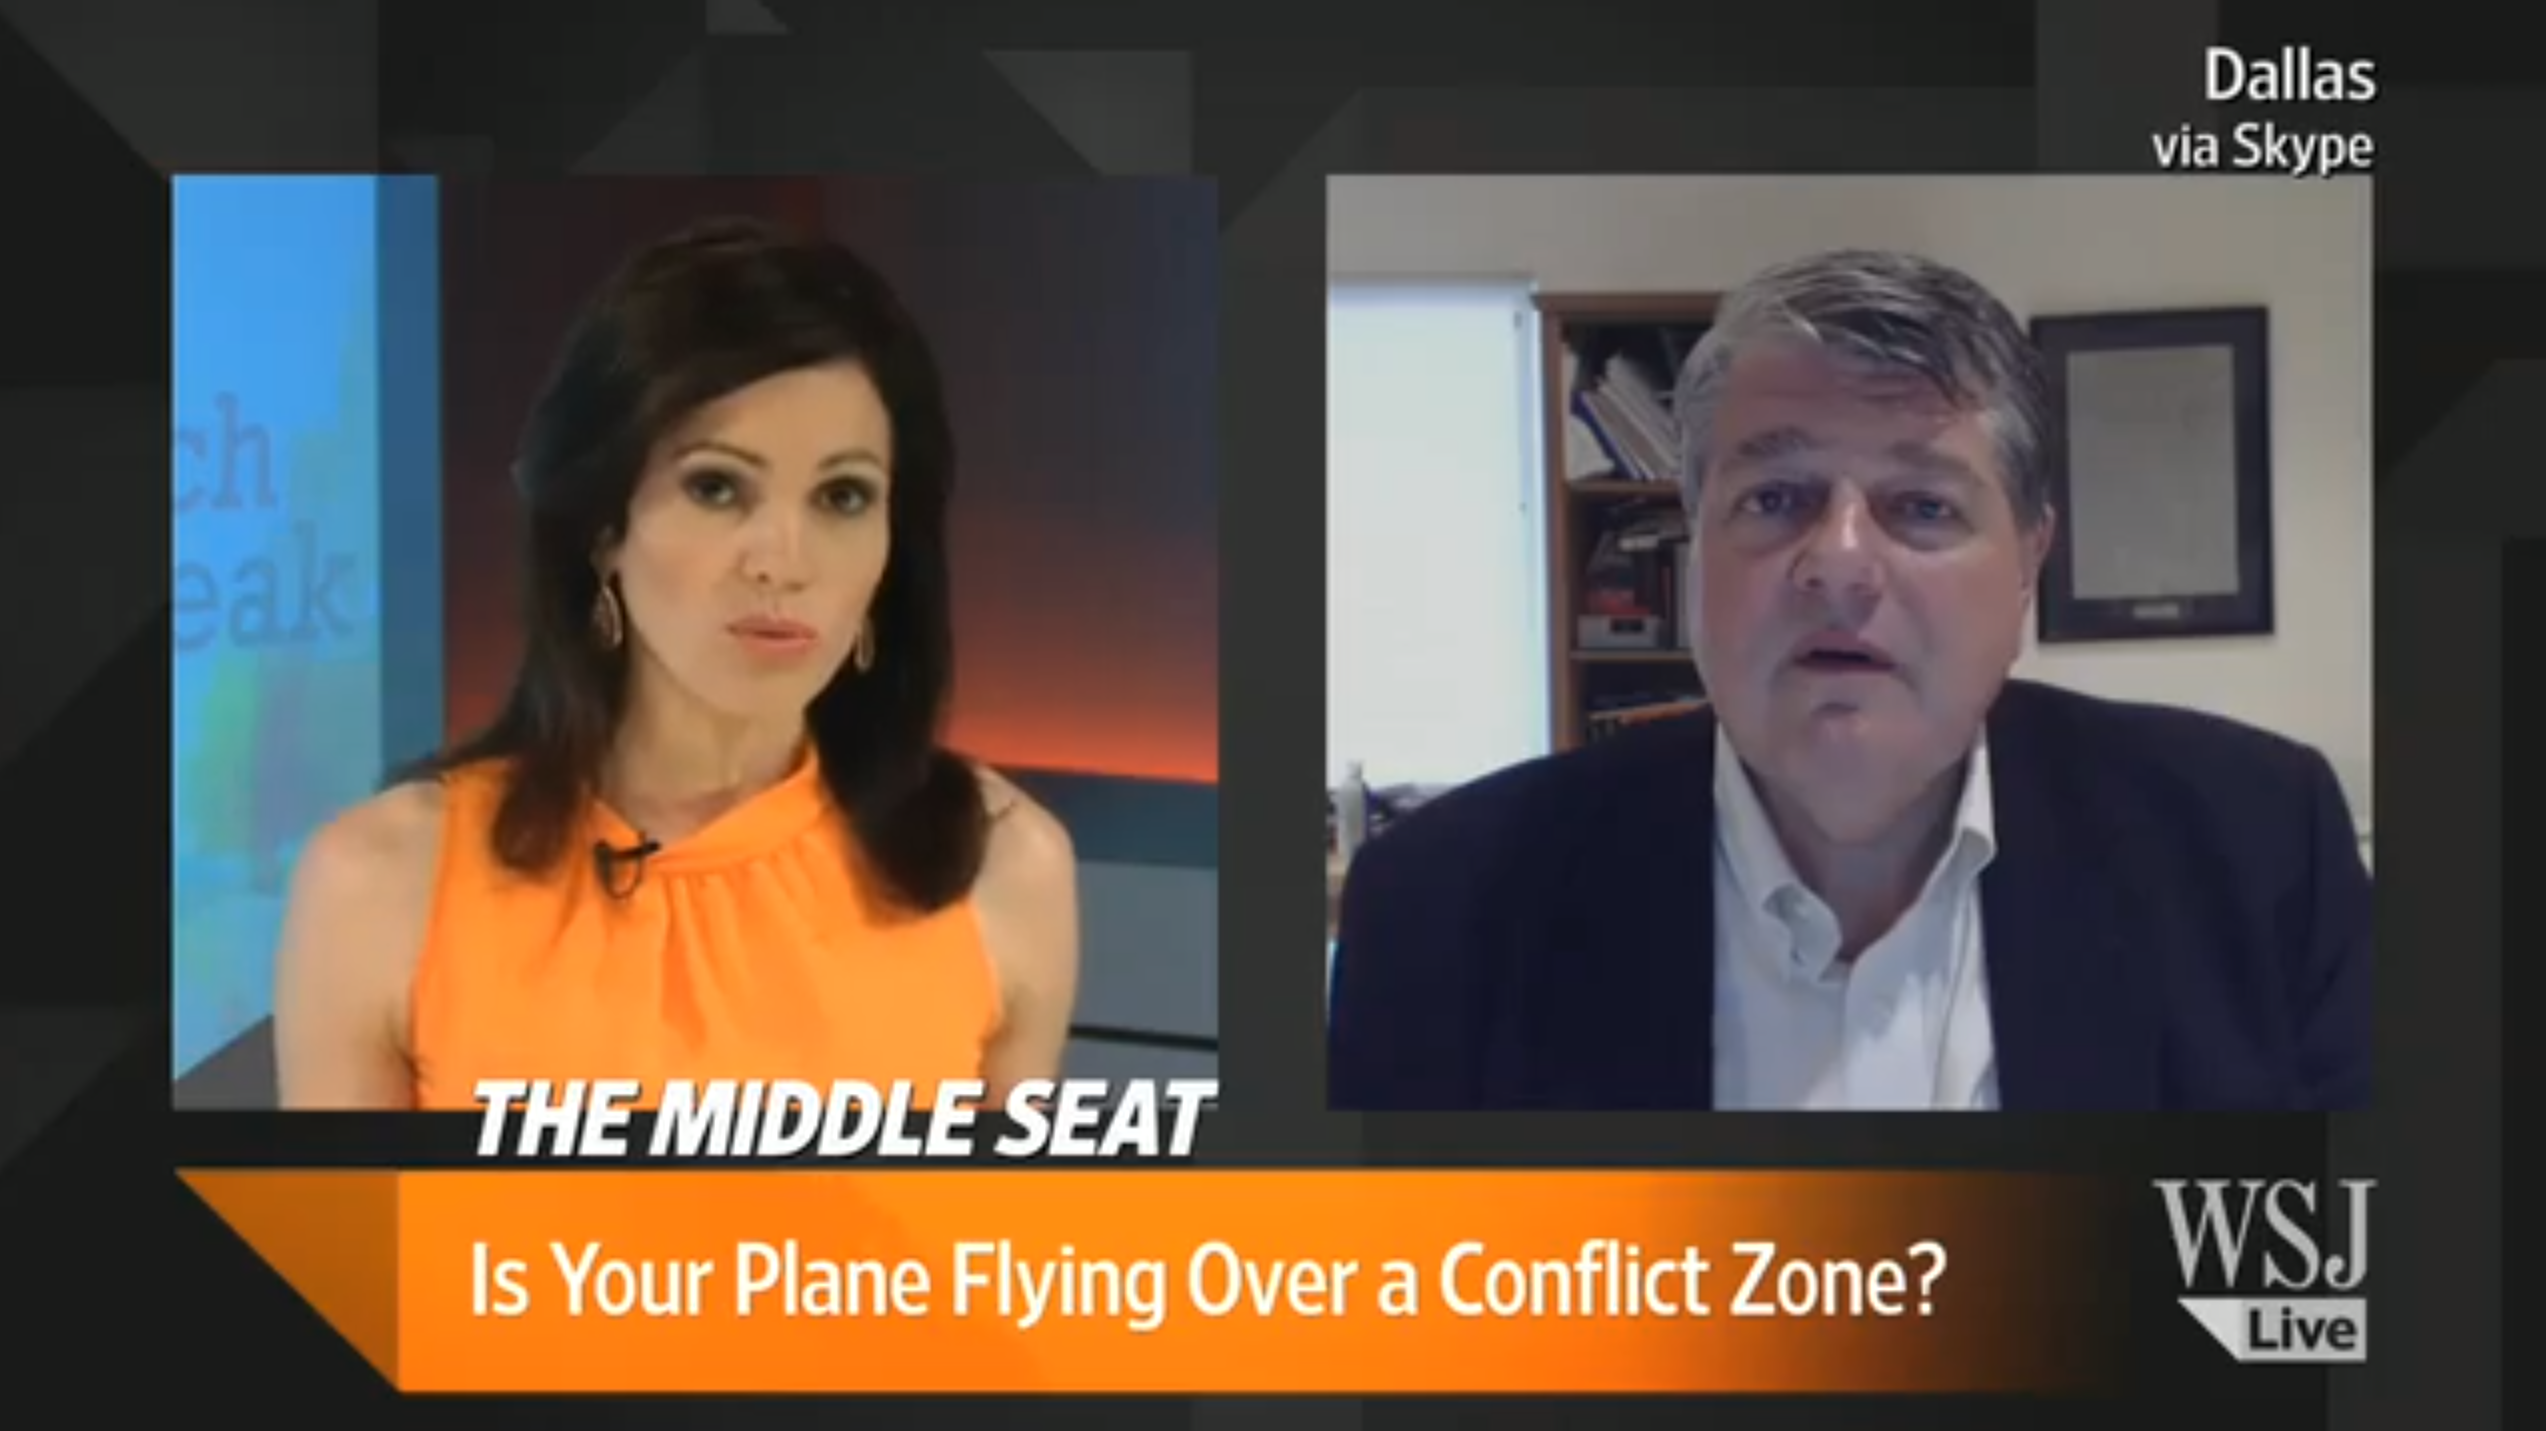 Airlines navigating over 40 kinetic conflict zones worldwide